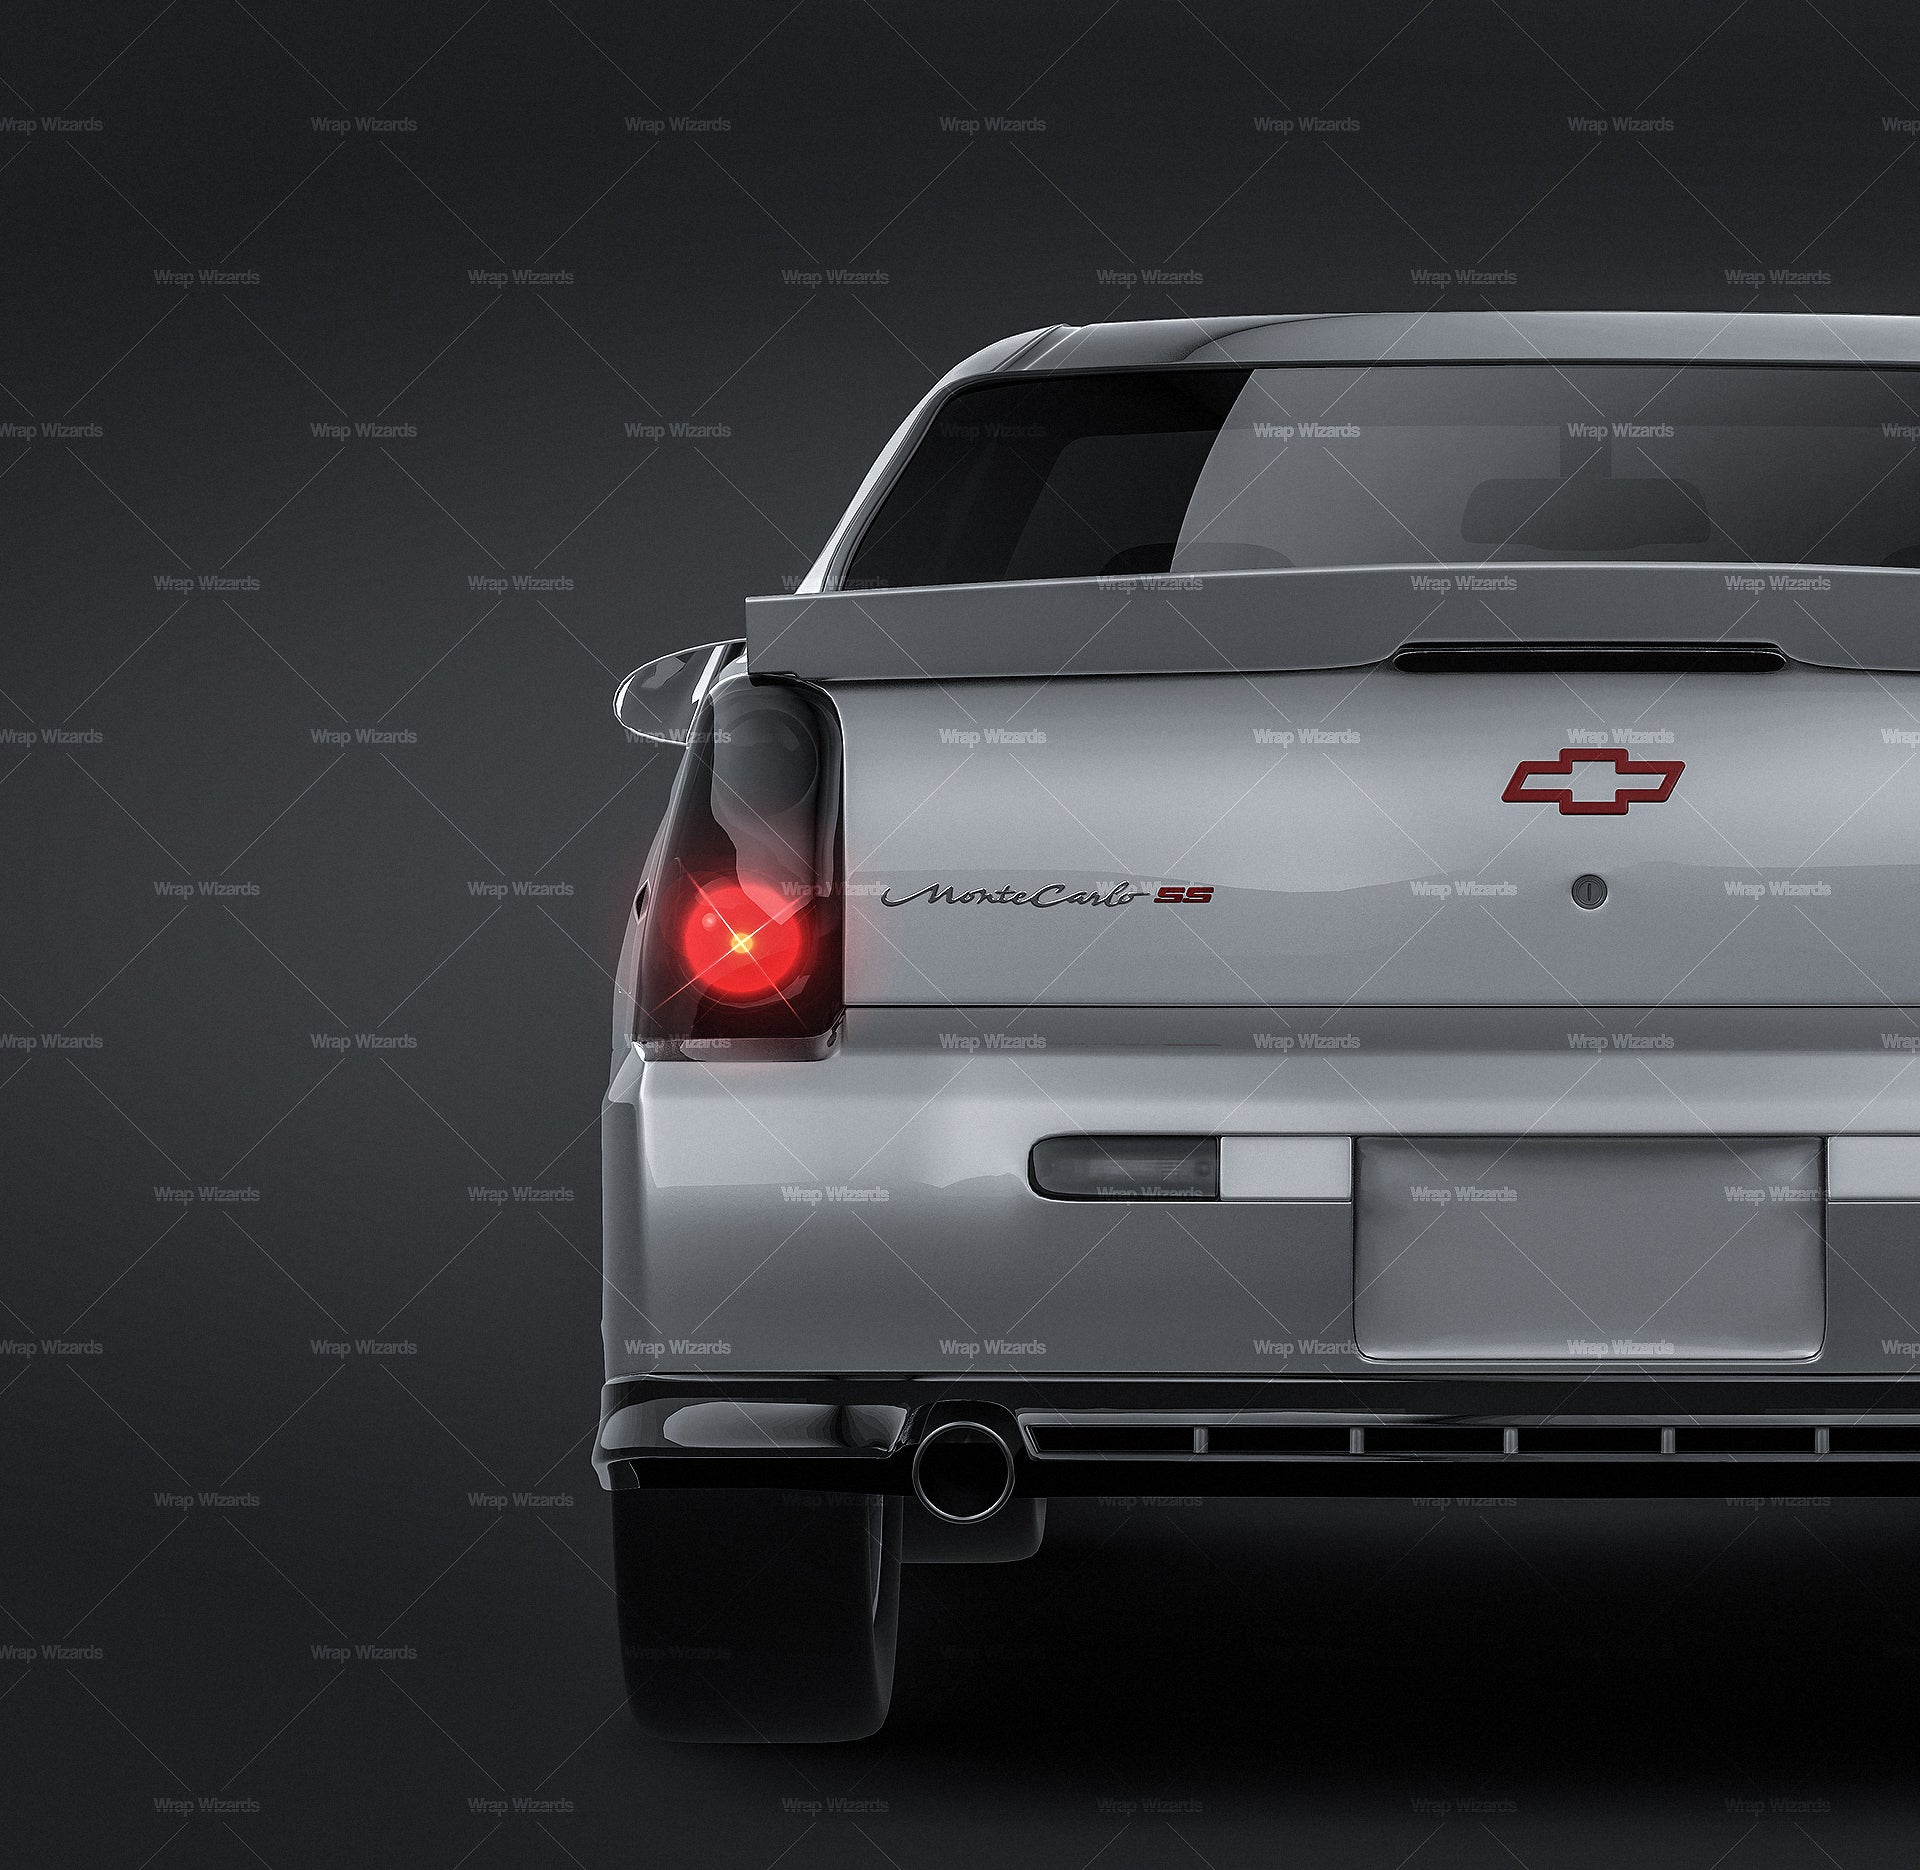 Chevrolet Monte Carlo 2004 all sides Car Mockup Template.psd